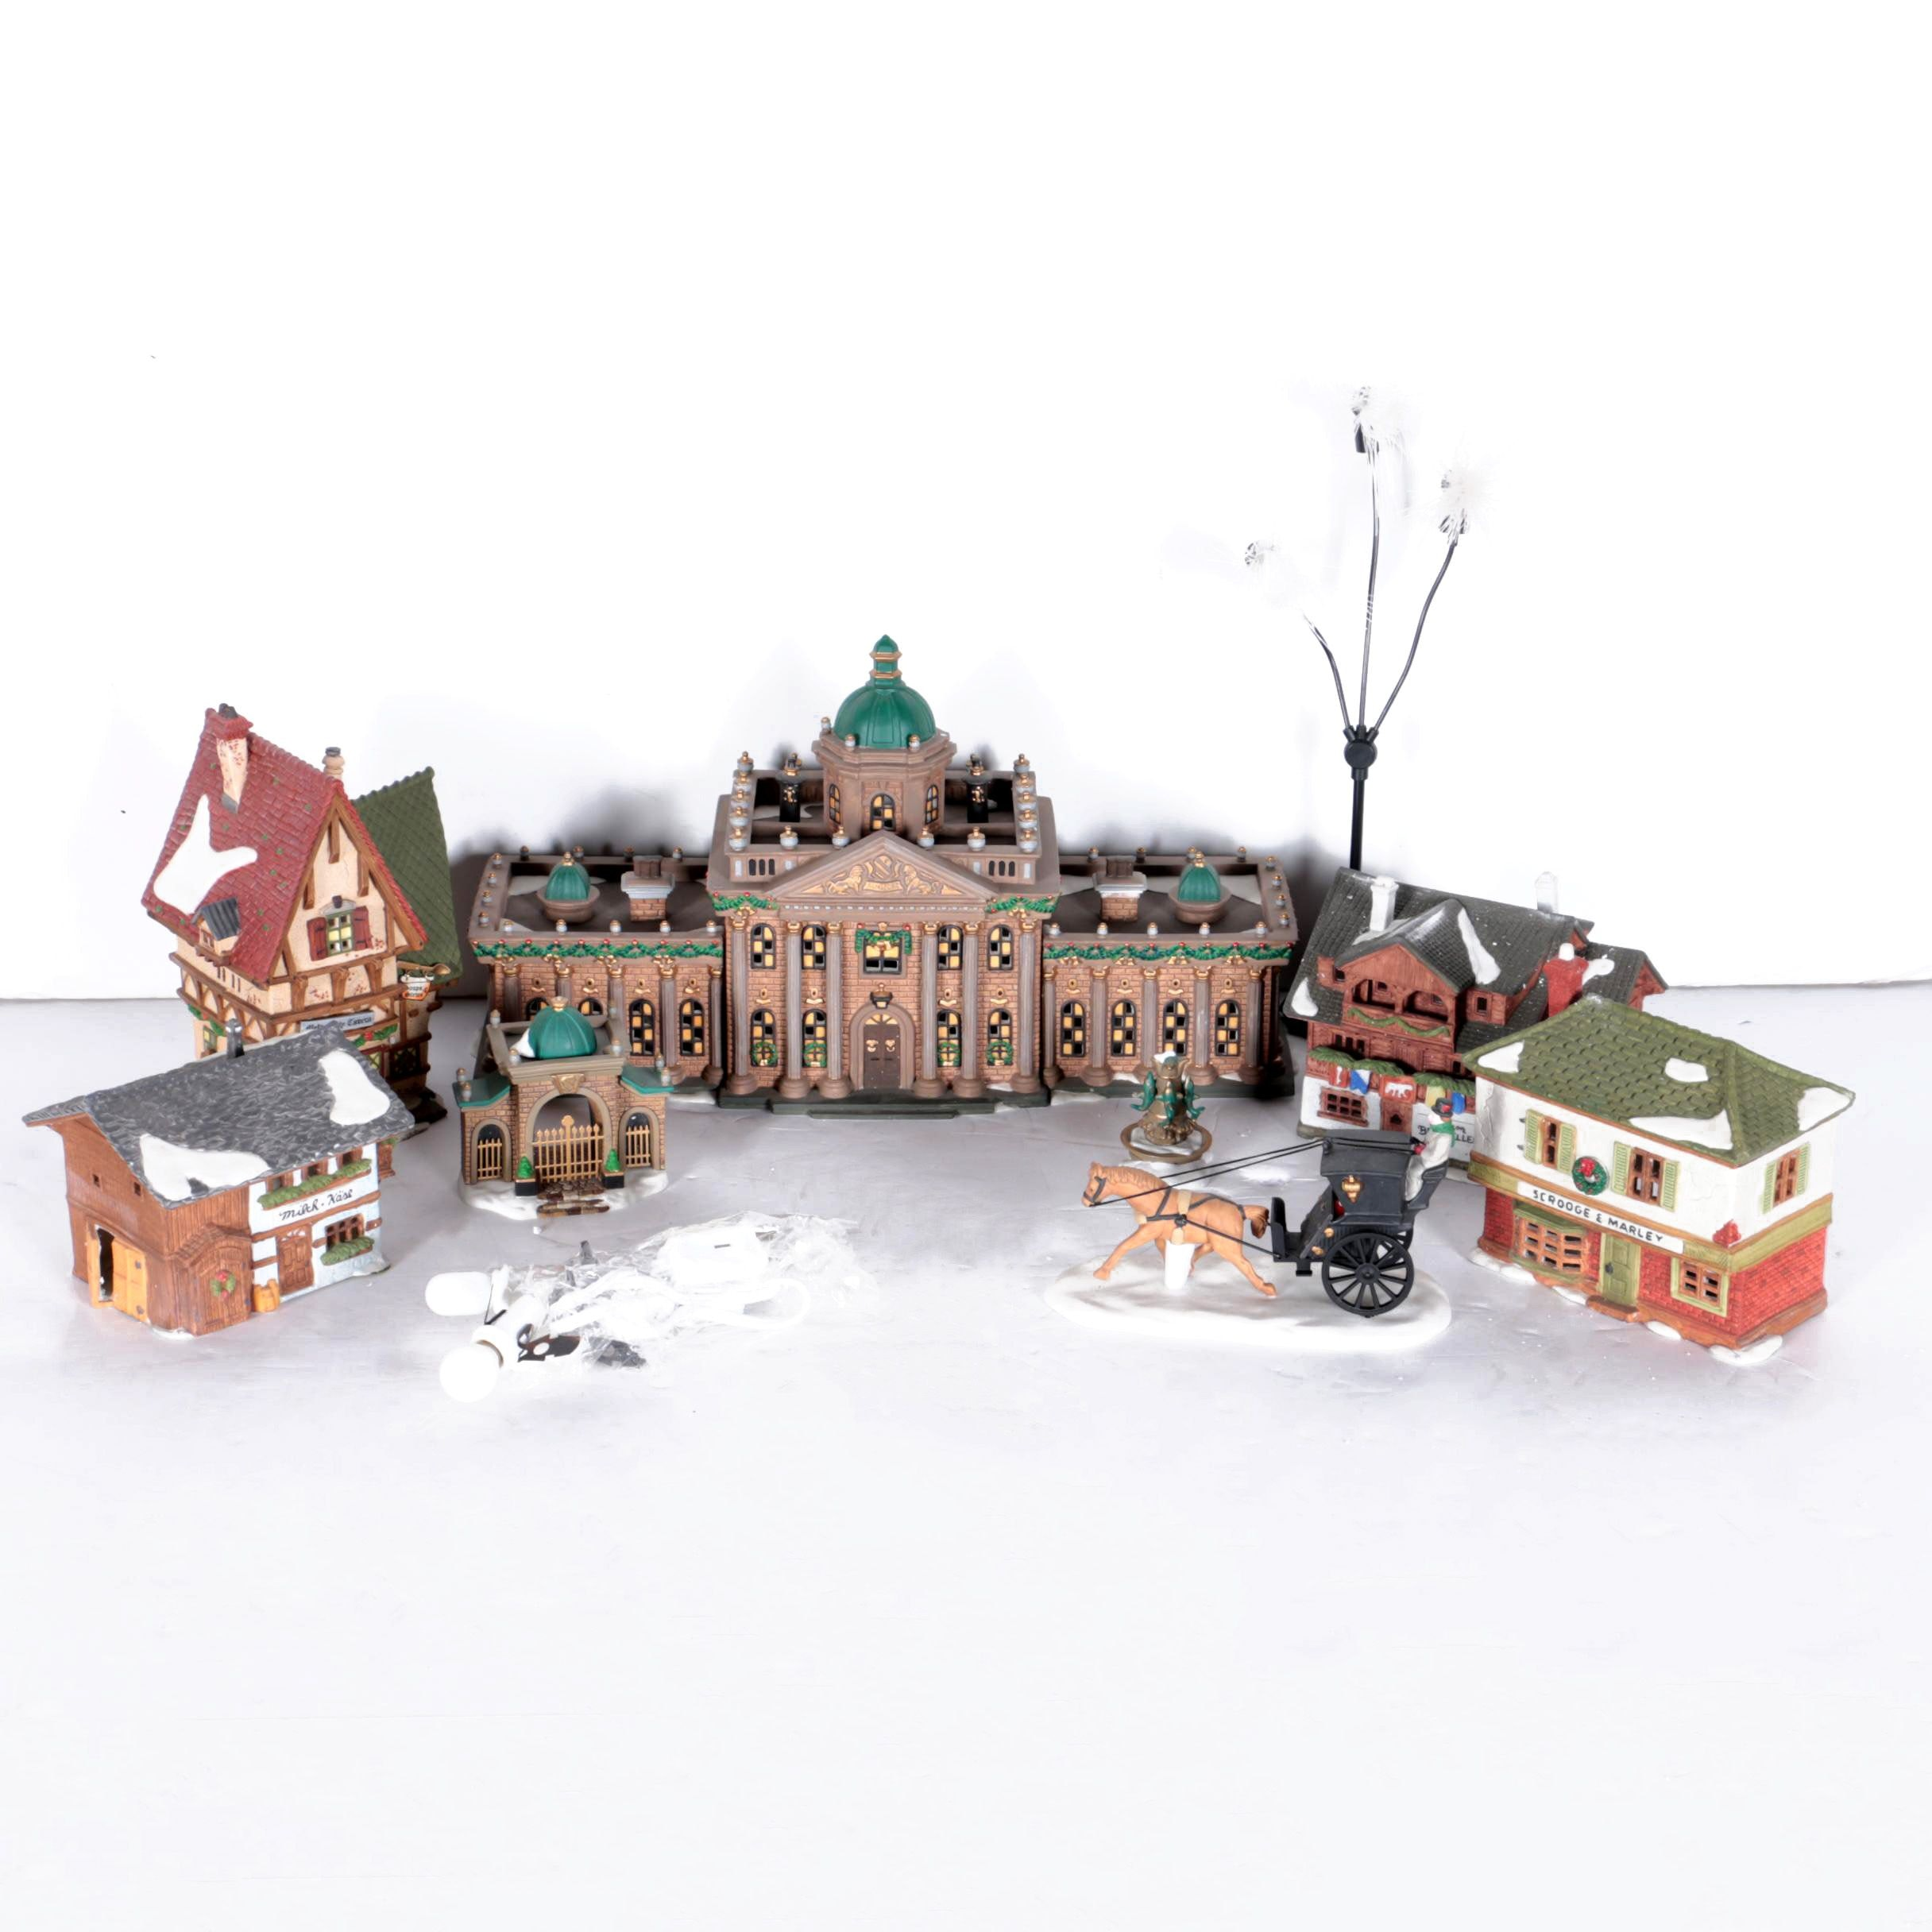 Dept. 56 Christmas Village Buildings and Accessories Including Ramsford Palace